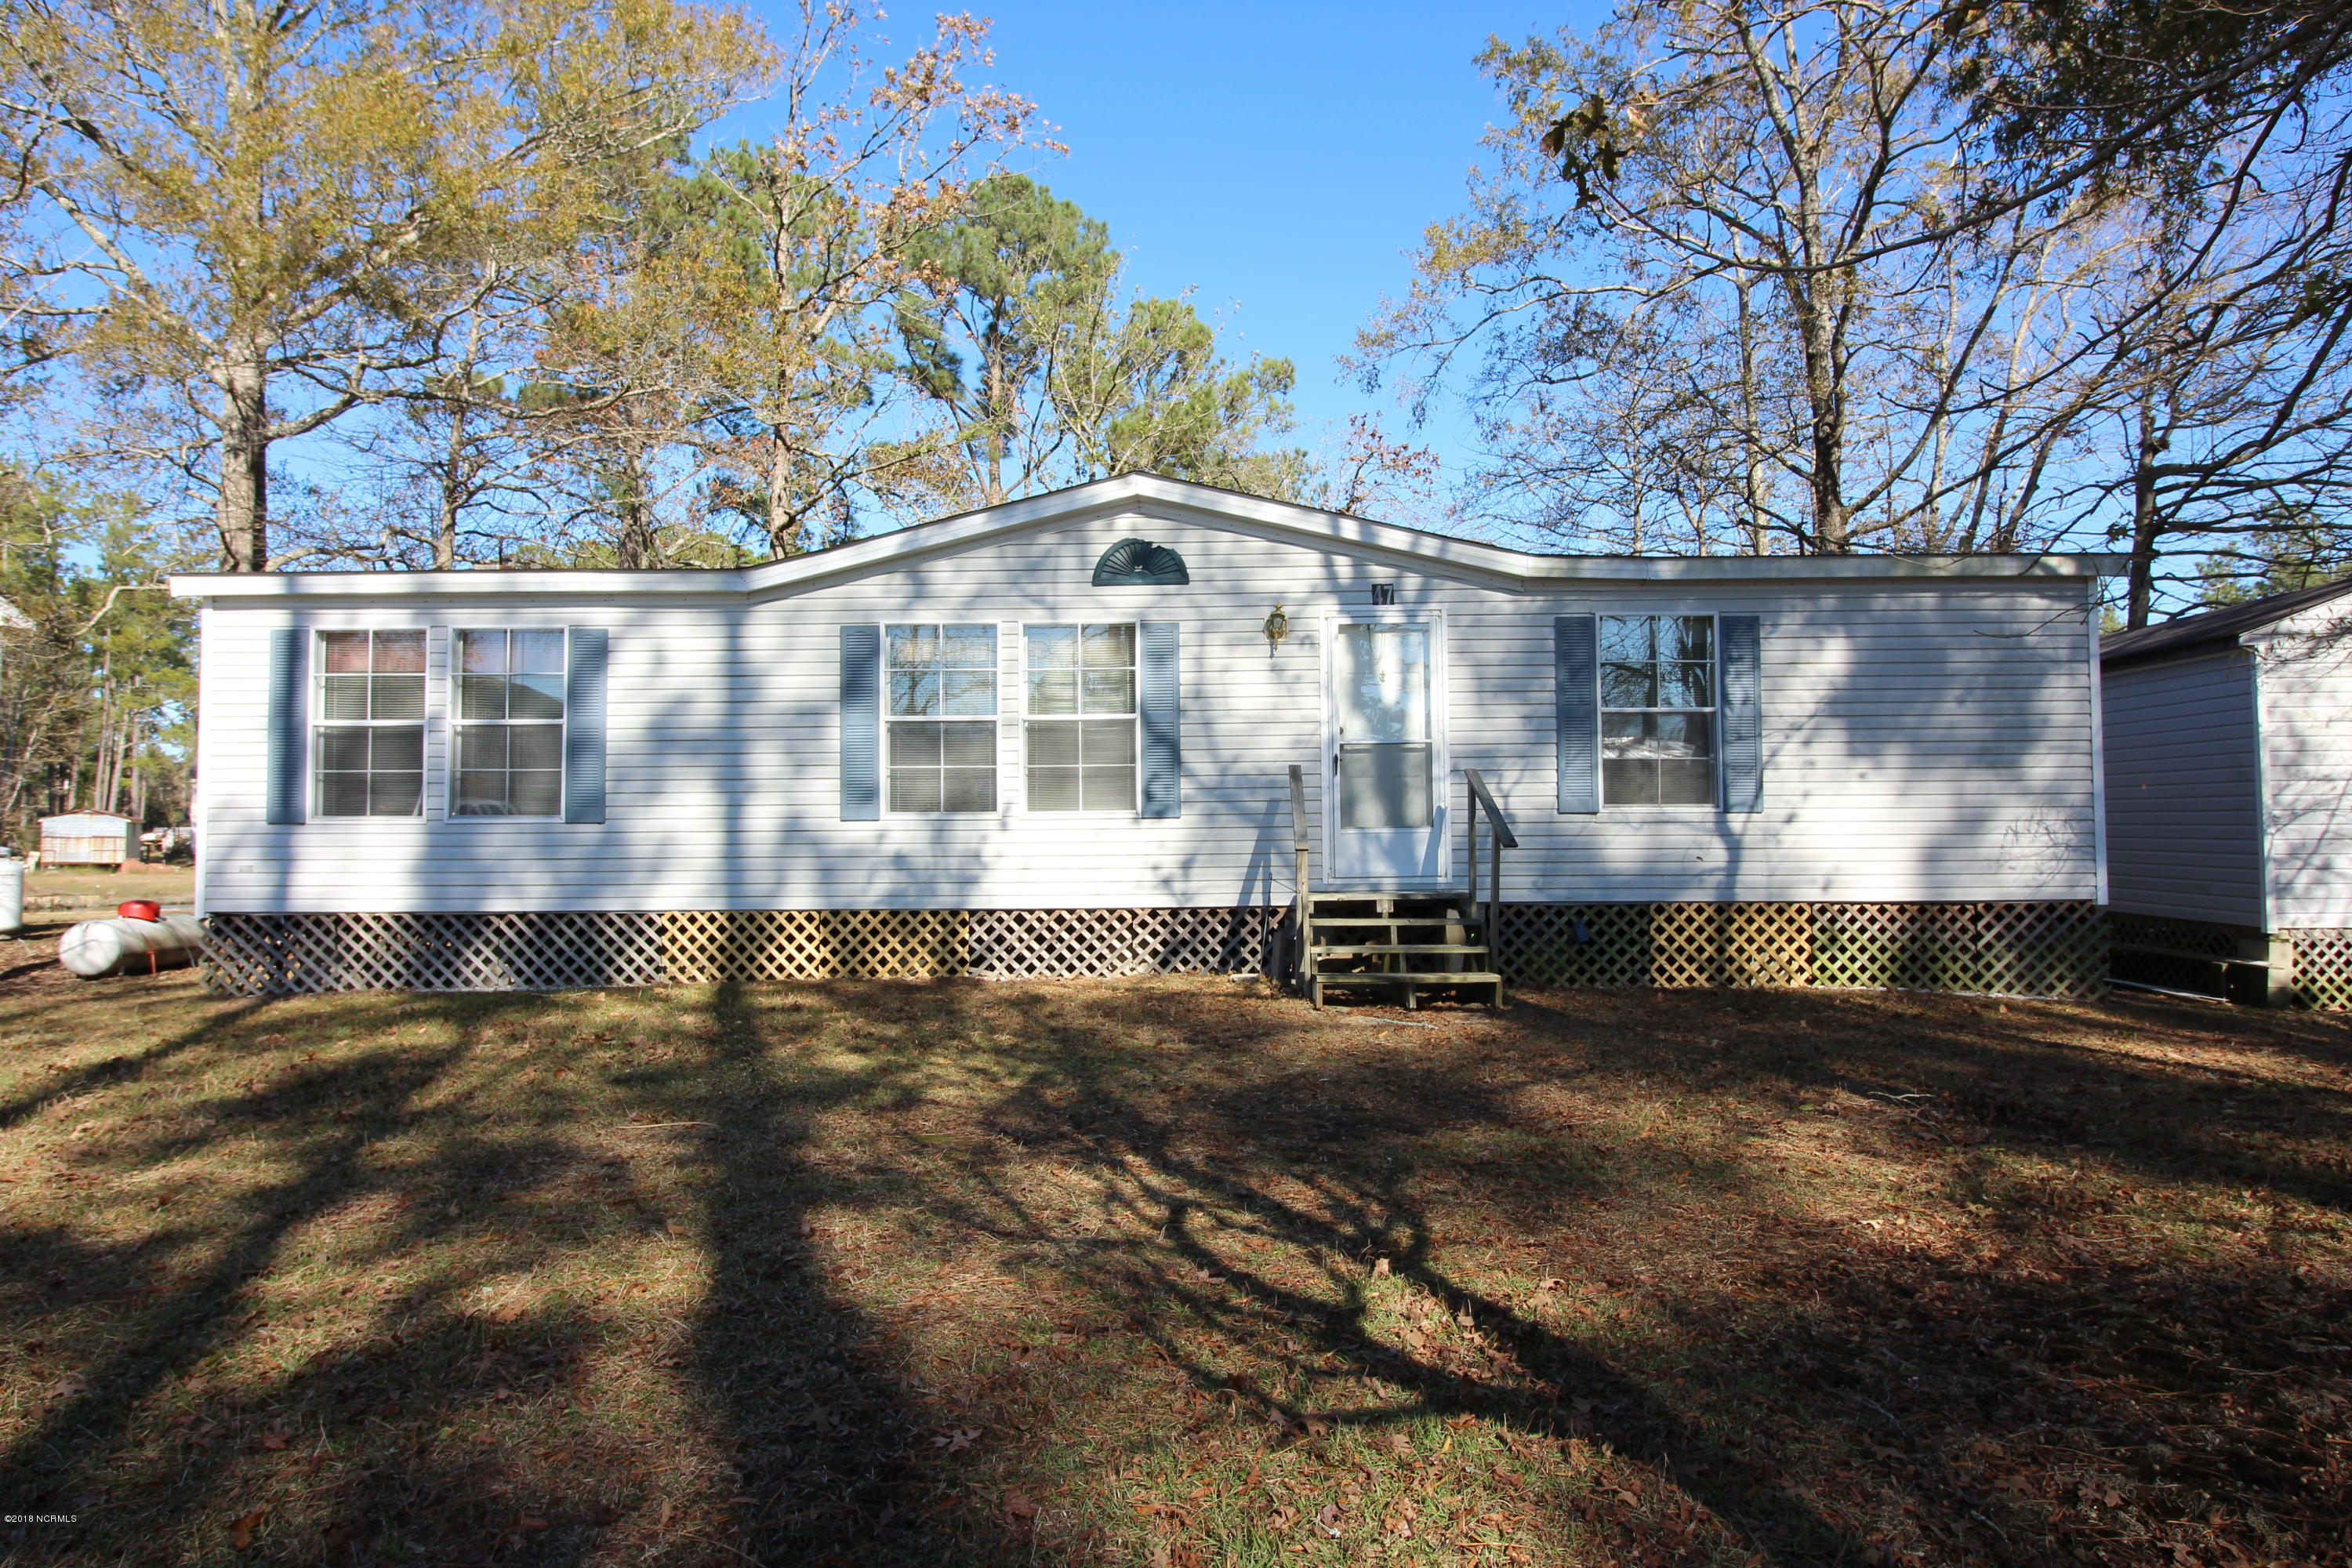 47 Point Avenue, Belhaven, North Carolina, 3 Bedrooms Bedrooms, 7 Rooms Rooms,2 BathroomsBathrooms,Manufactured home,For sale,Point,100134258